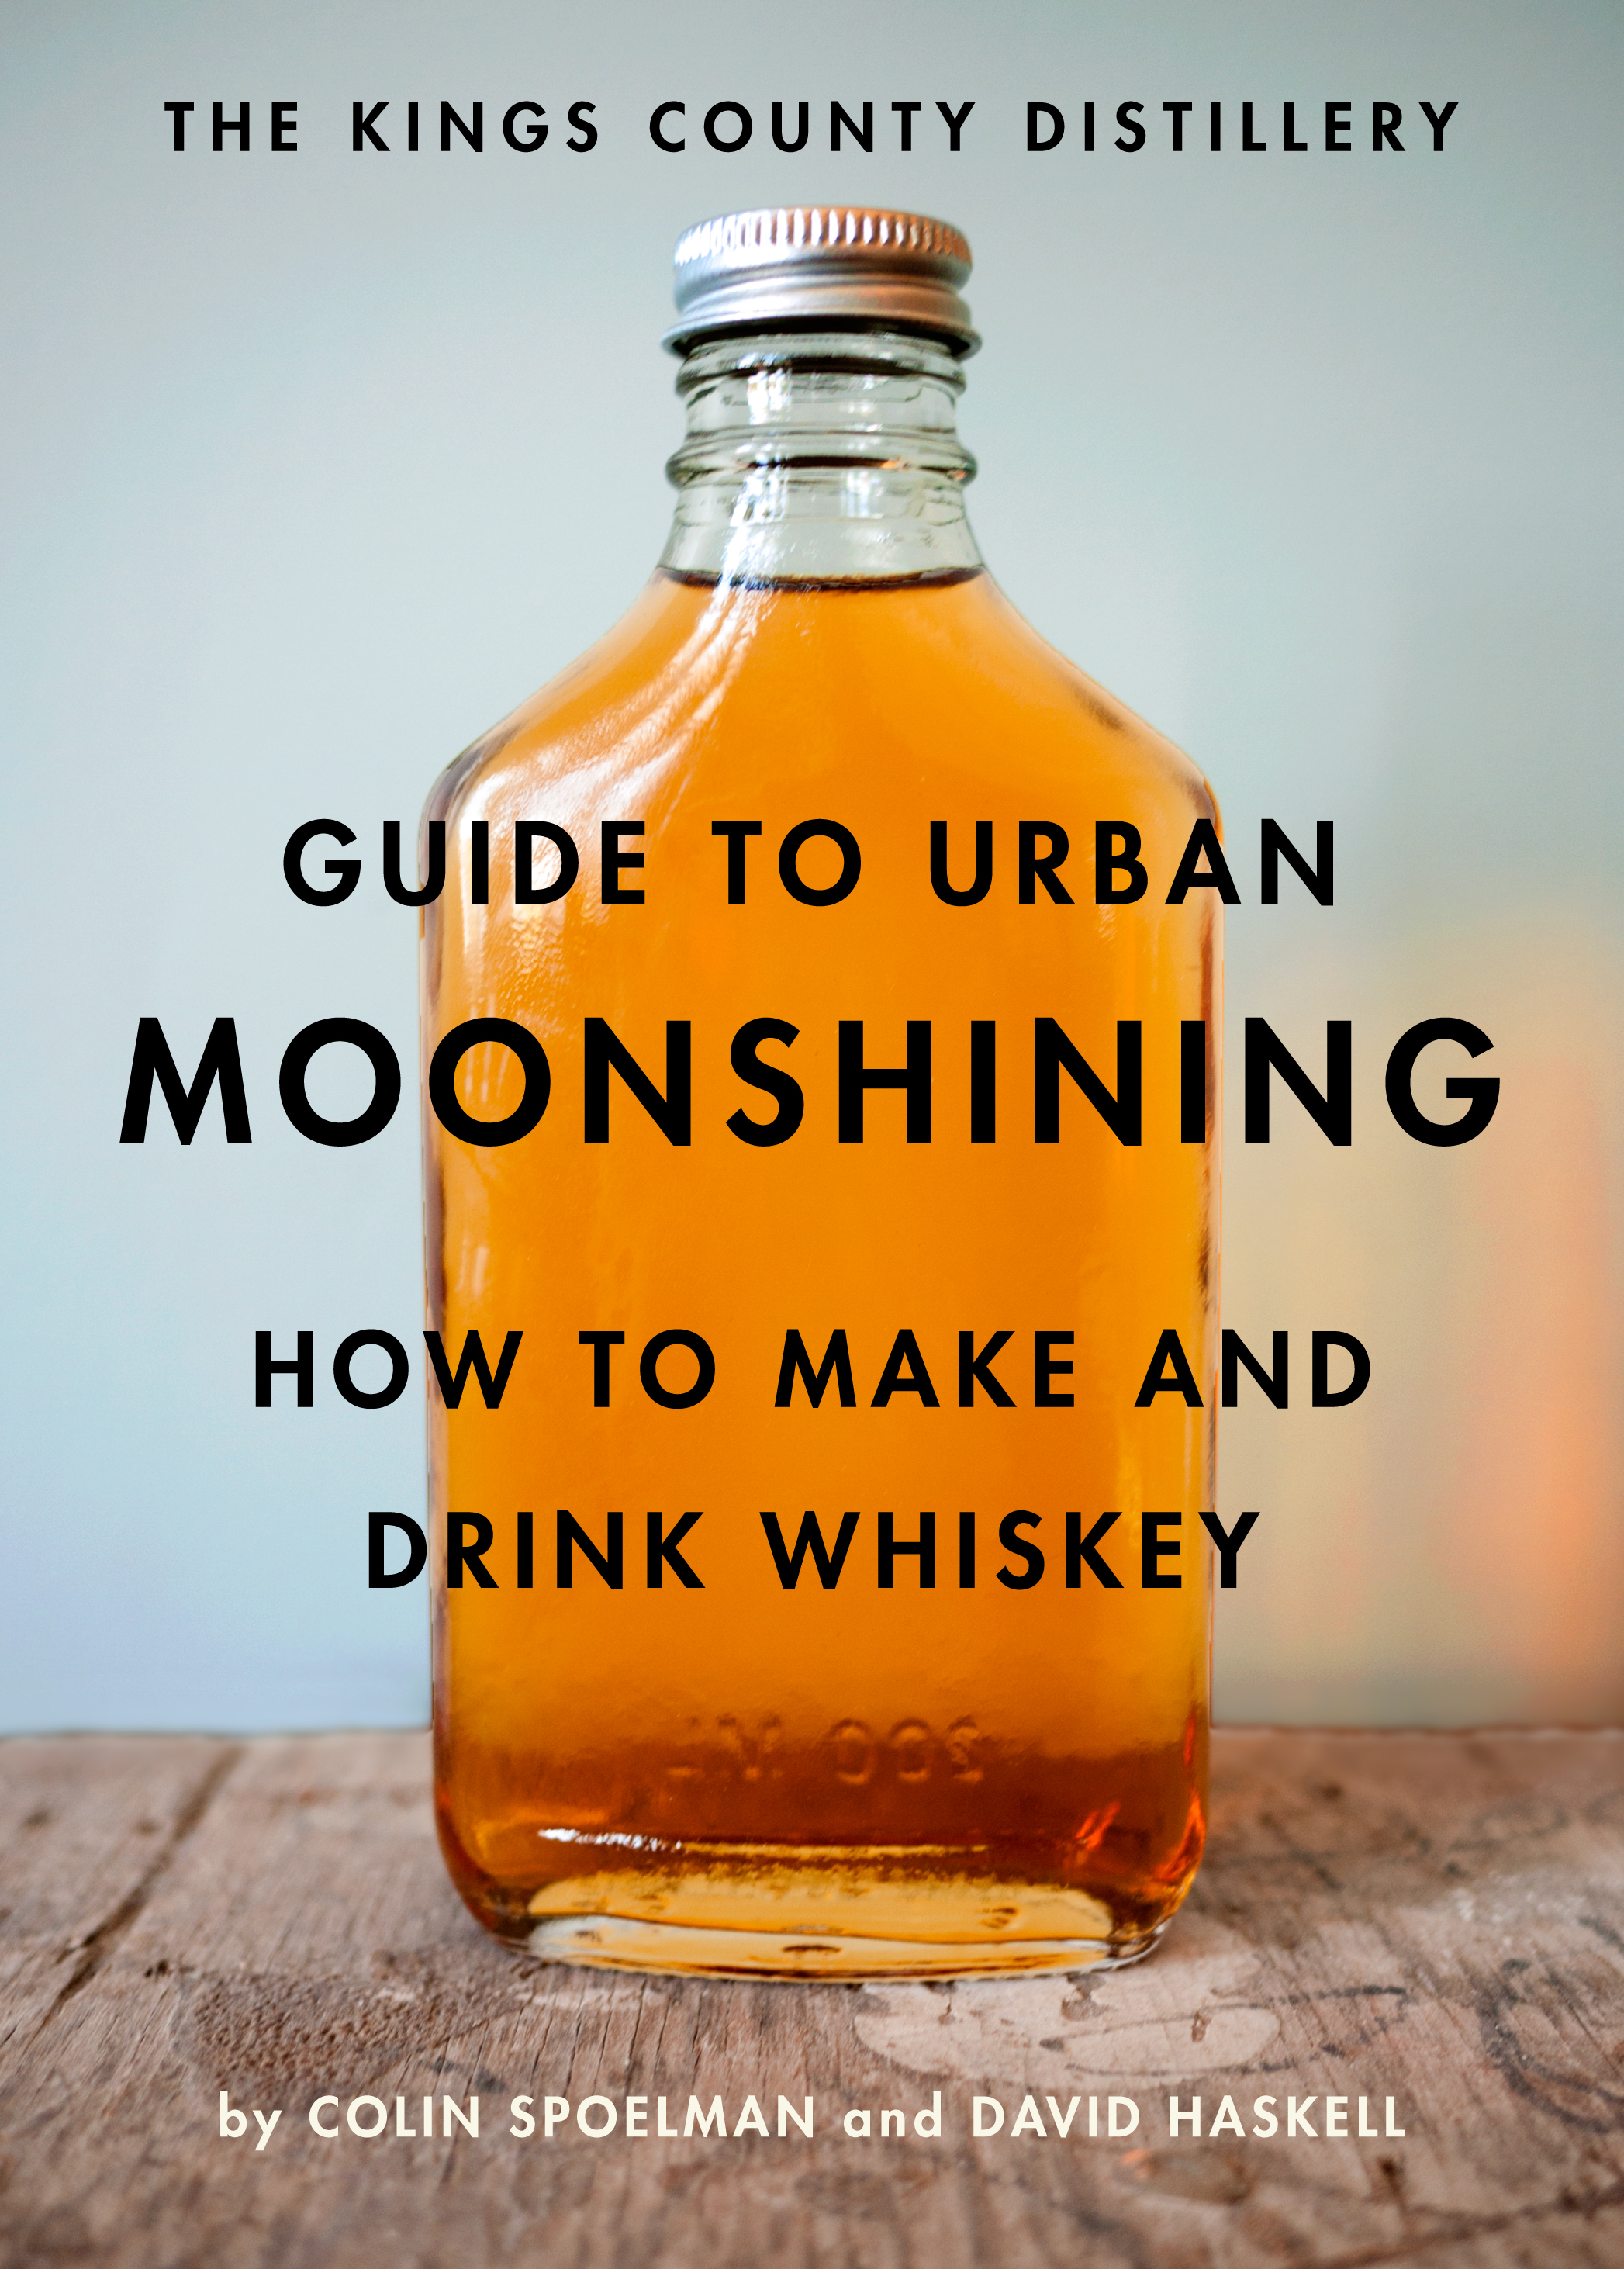 Book Launch: The Kings County Distillery Guide to Urban Moonshining by Colin Spoelman and David Haskell